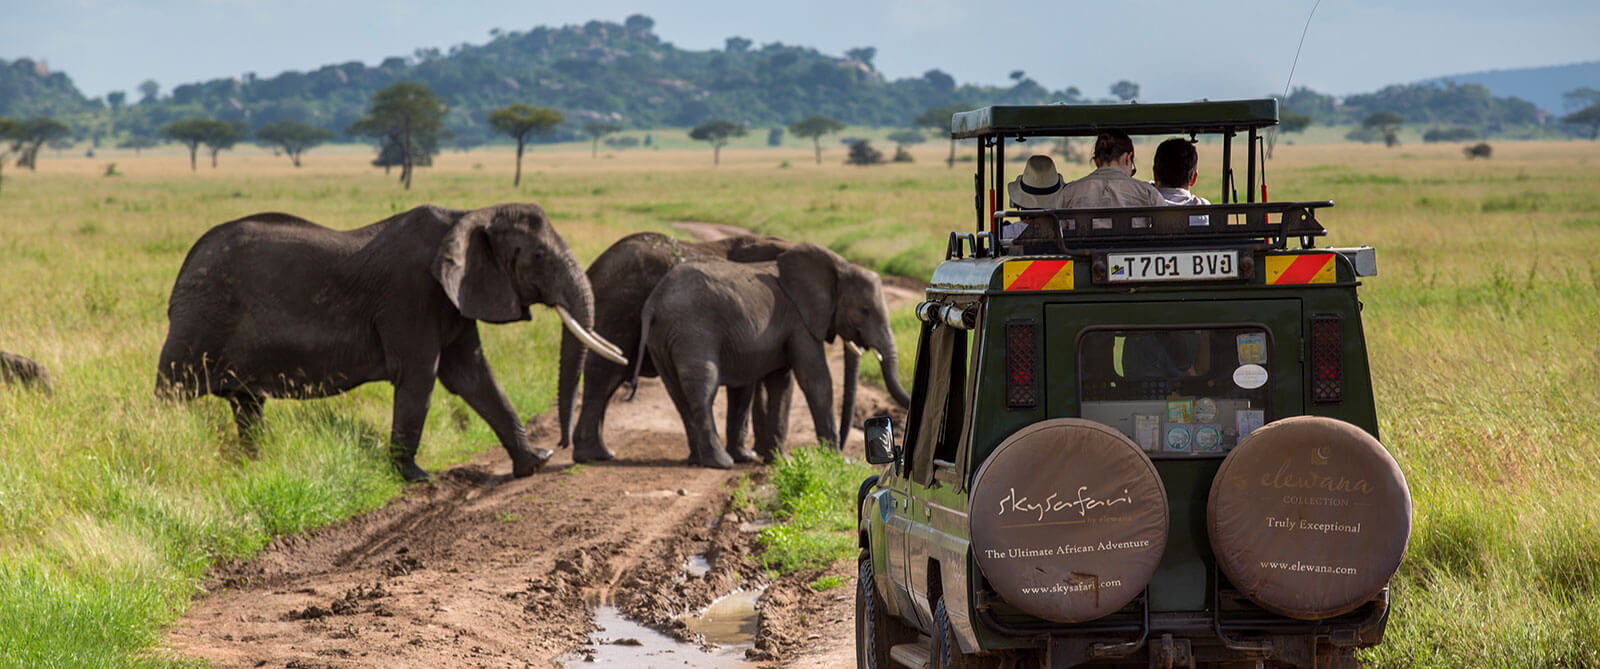 Serengeti Pioneer Camp - Elephants on Big 5 Game Drive - Tanzania Safari Honeymoon